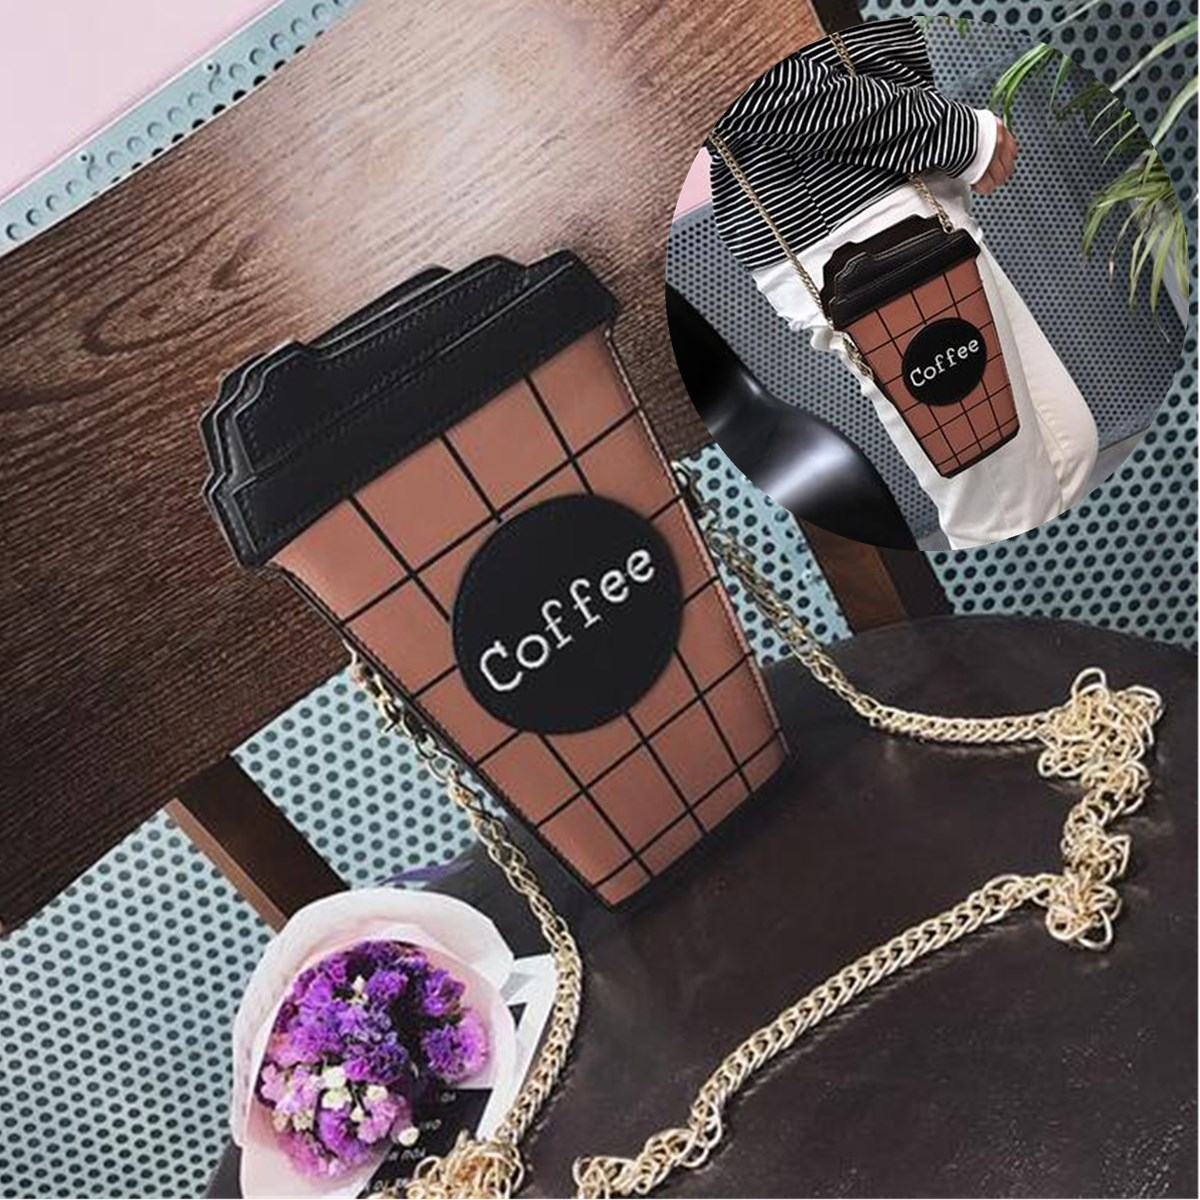 Women Cute Coffee Latte Handbag Messenger Shoulder Chain Totes Bag Purse For iphone X For SamsungS8